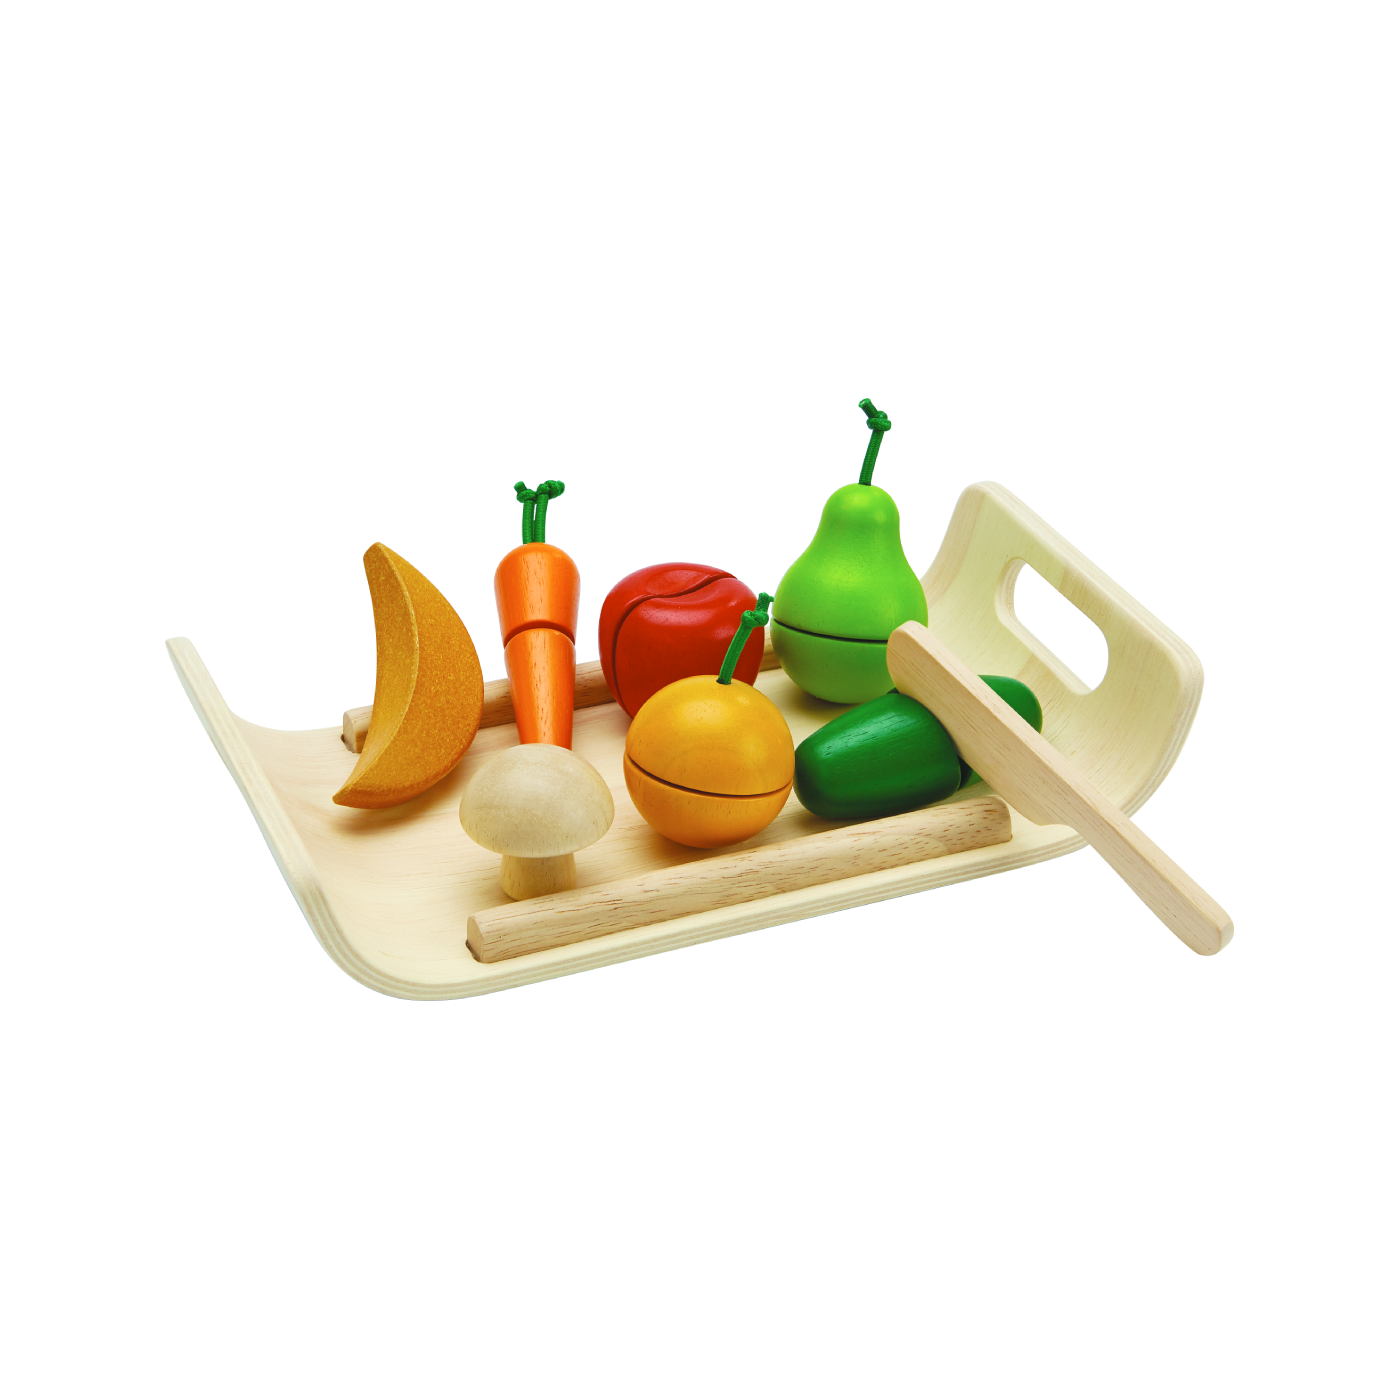 3416_PlanToys_ASSORTED_FRUIT_and_VEGETABLE_Pretend_Play_Fine_Motor_Imagination_Language_and_Communications_Social_18m_Wooden_toys_Education_toys_Safety_Toys_Non-toxic_0.png